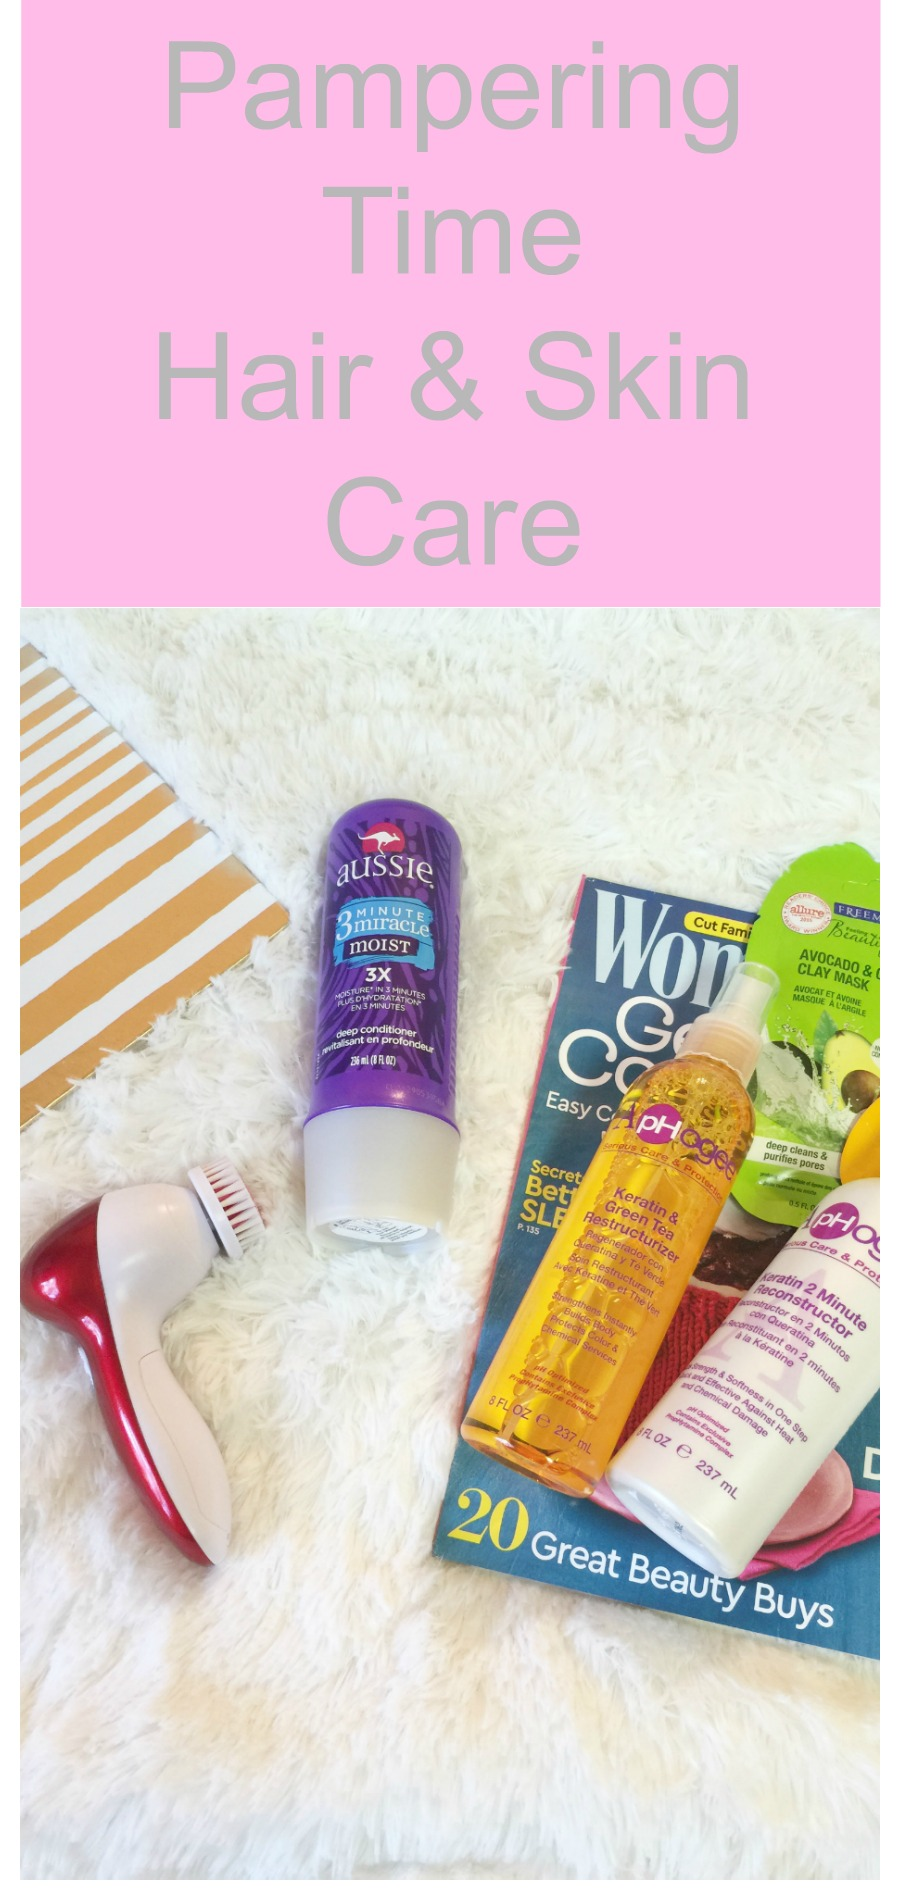 pampering-time-hair-skin-care